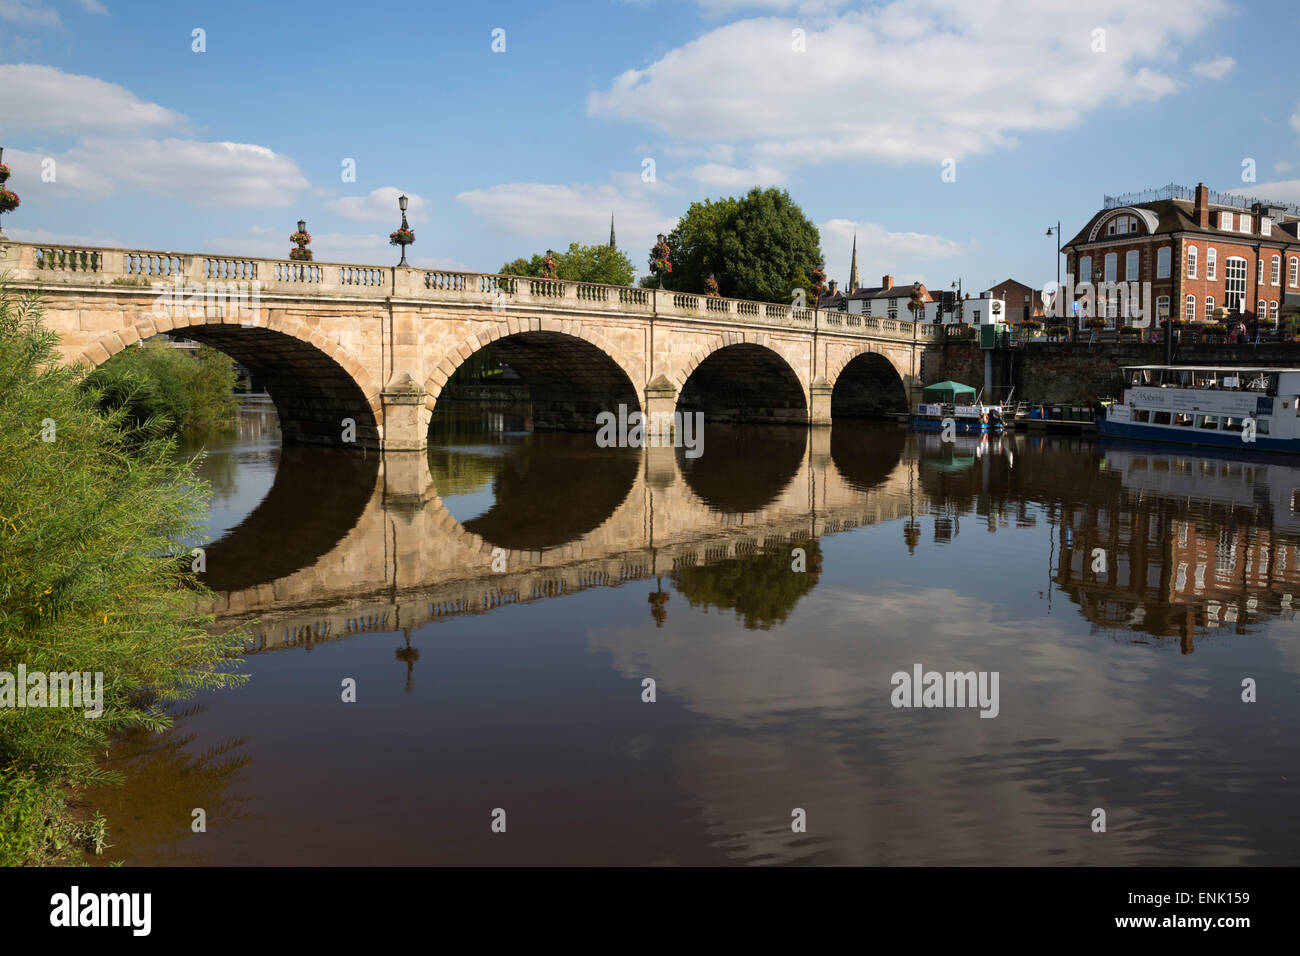 Les Gallois Pont sur la rivière Severn, Shrewsbury, Shropshire, Angleterre, Royaume-Uni, Europe Photo Stock